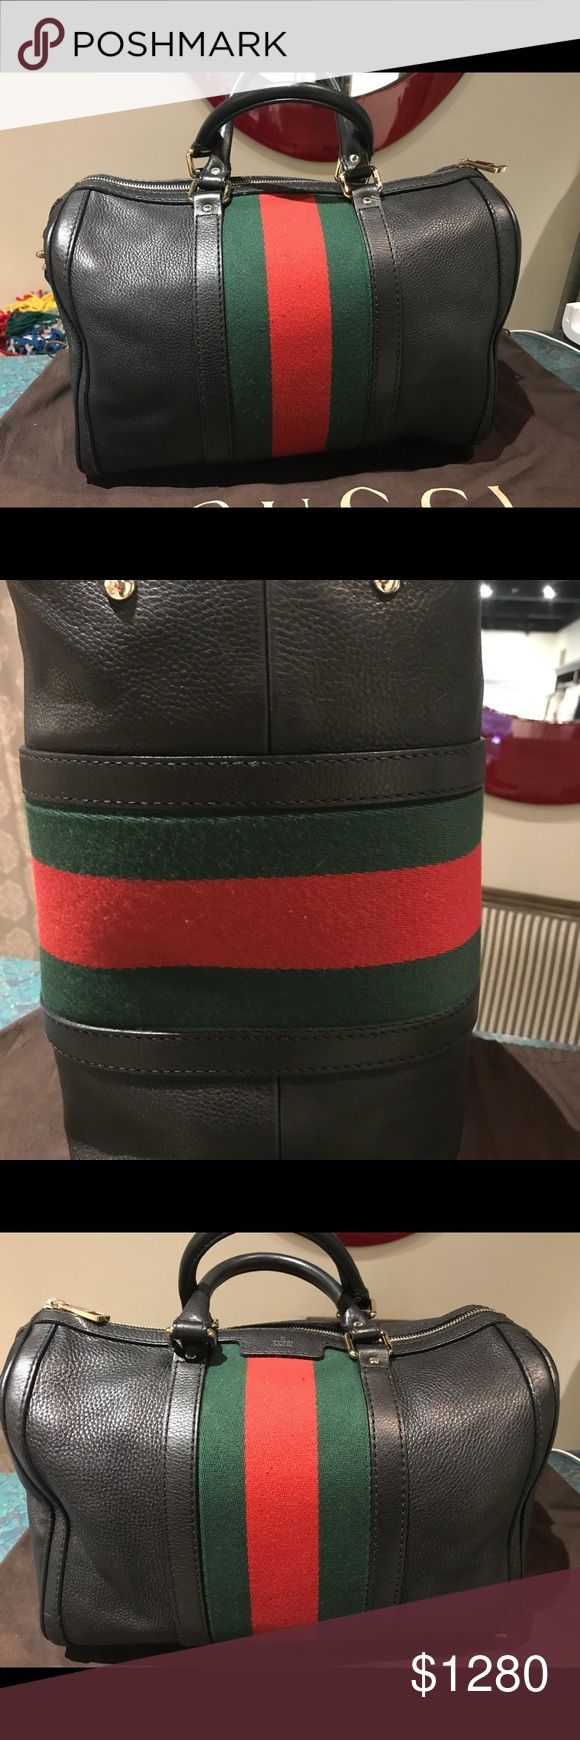 Authentic Gucci Handbag  Perfect condition, I bought in the Gucci Store of Merrick Park Florida.  Real leather Gucci Bags